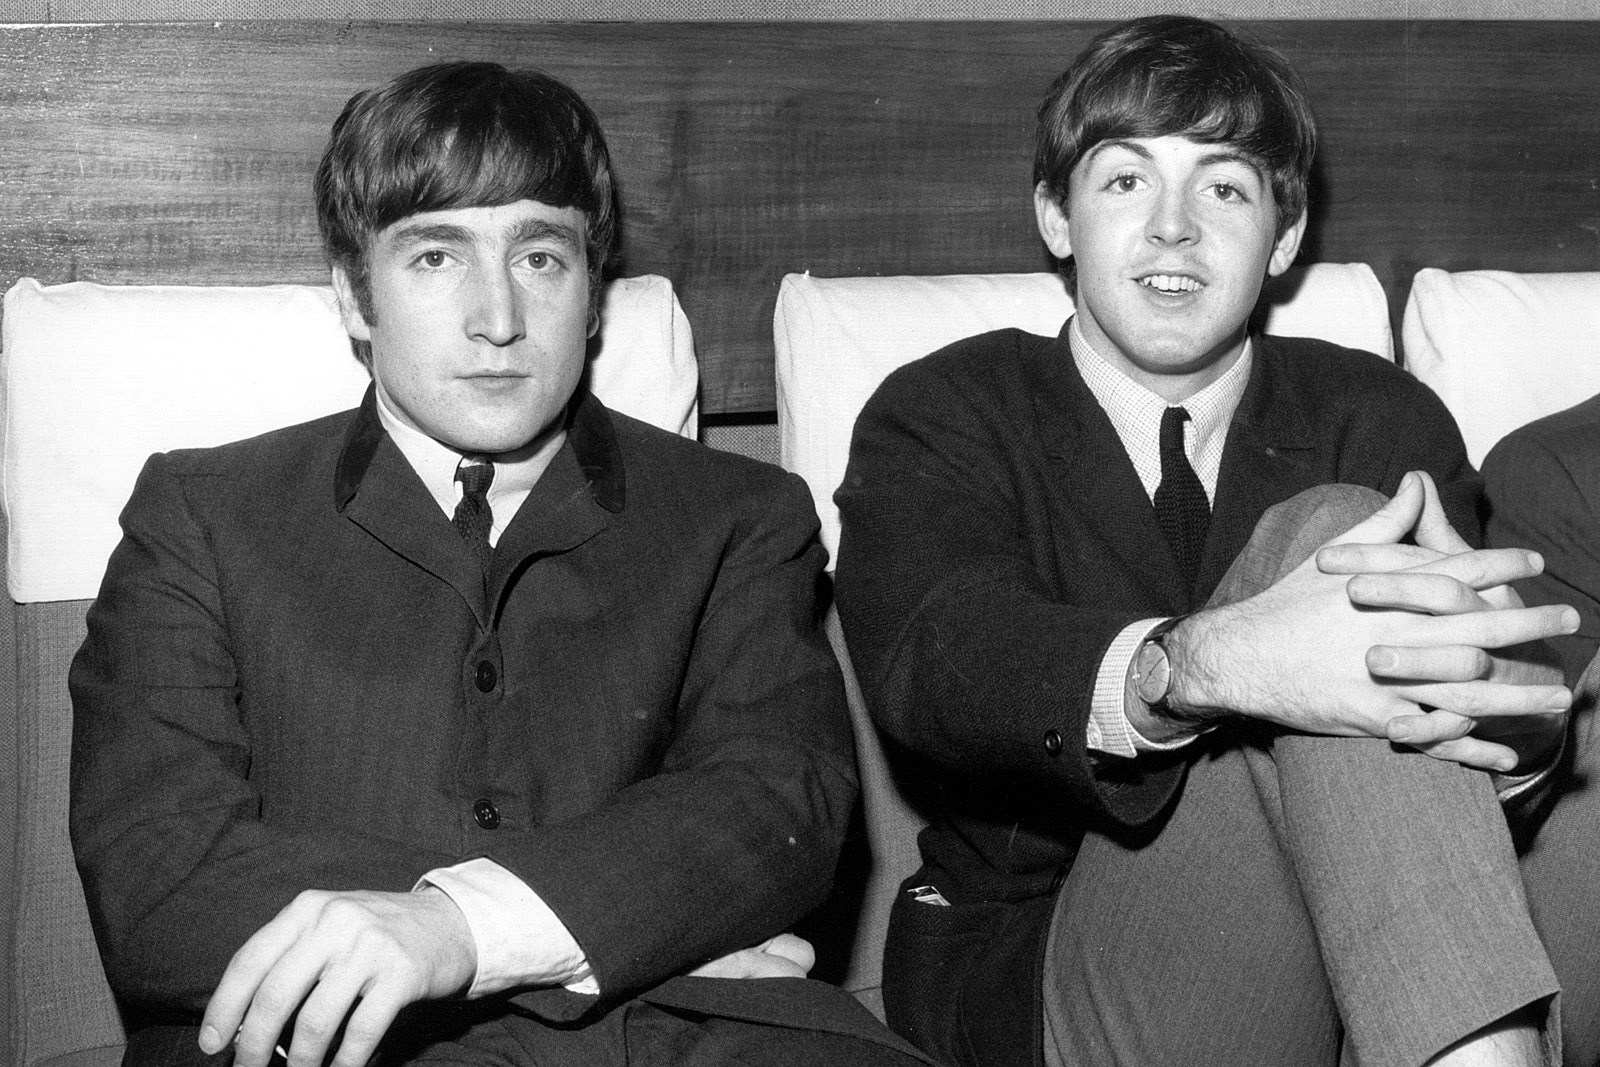 The Beatles: Paul McCartney was afraid of the scene